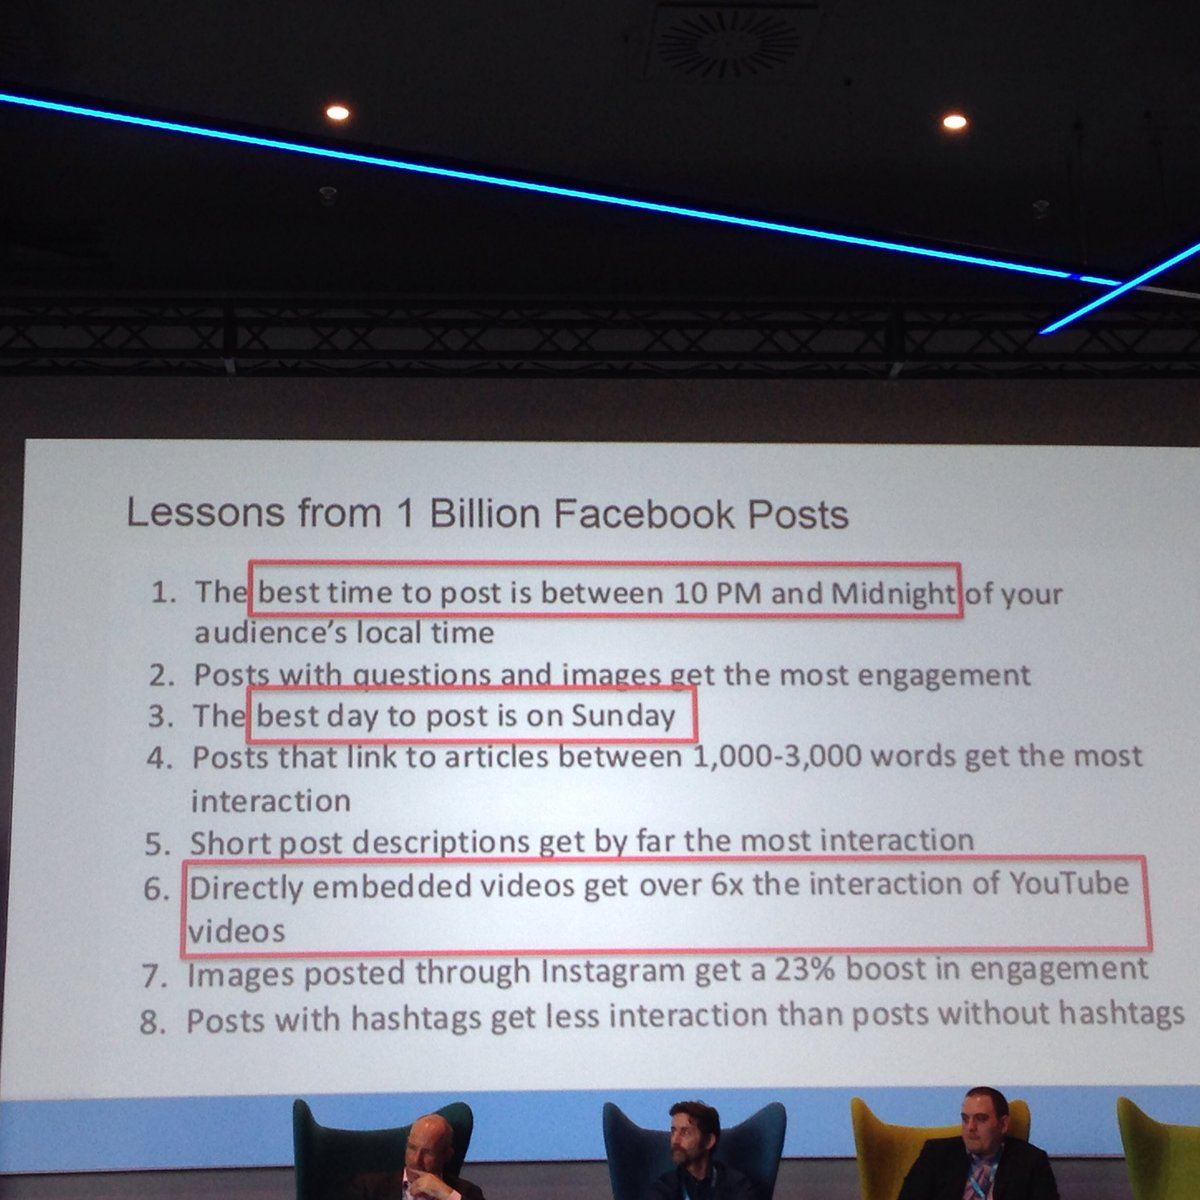 8 brilliant takeaways from 1bn Facebook posts, some will surprise you. #3XEDigital @steverayson @BuzzSumo #Lists